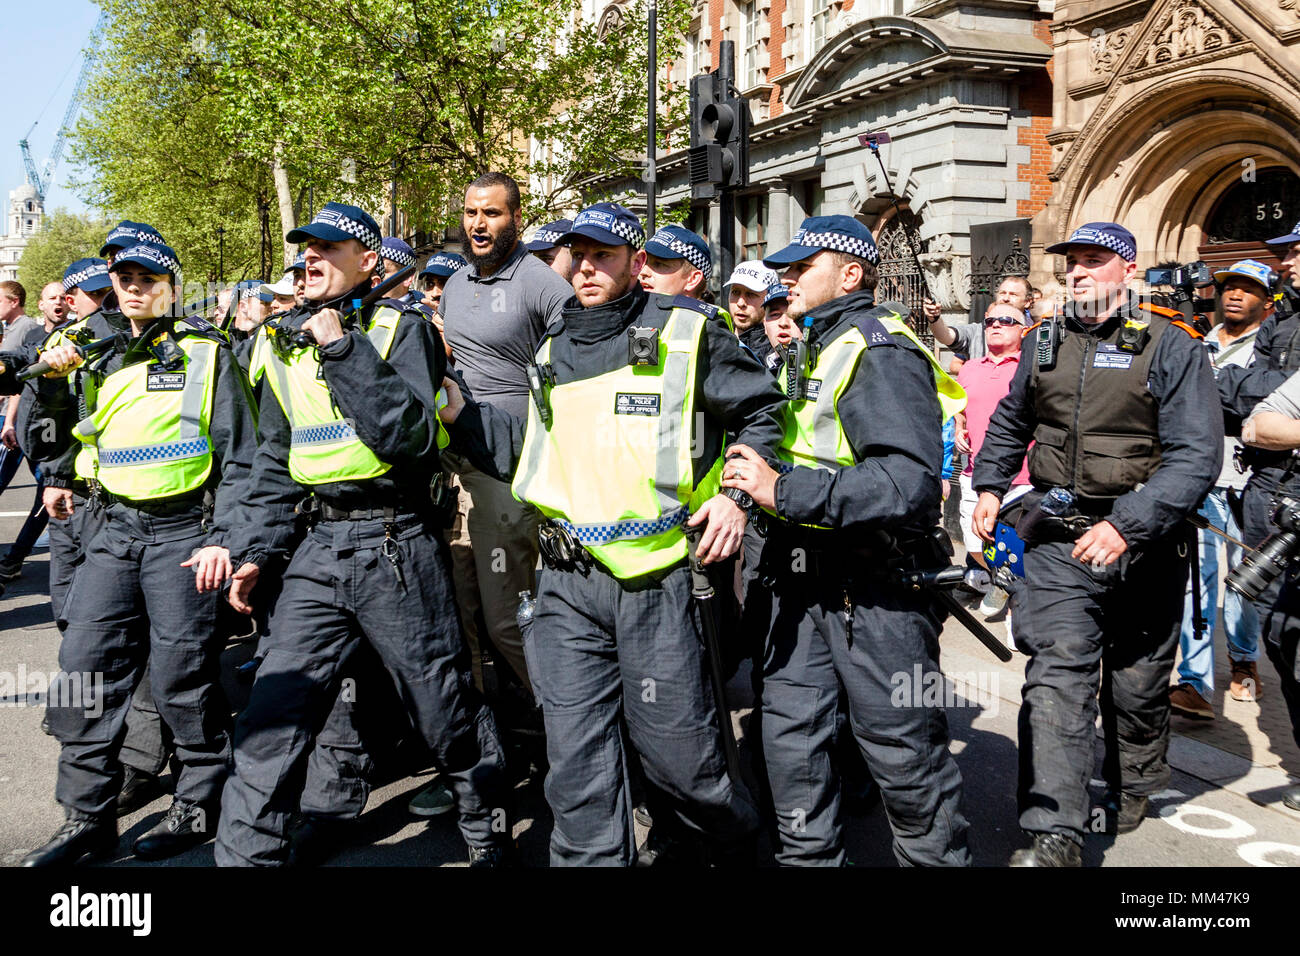 Metropolitan Police Officers escort prominent Muslim speaker Muhammed Hijab away from a freedom of speech rally, London, UK - Stock Image